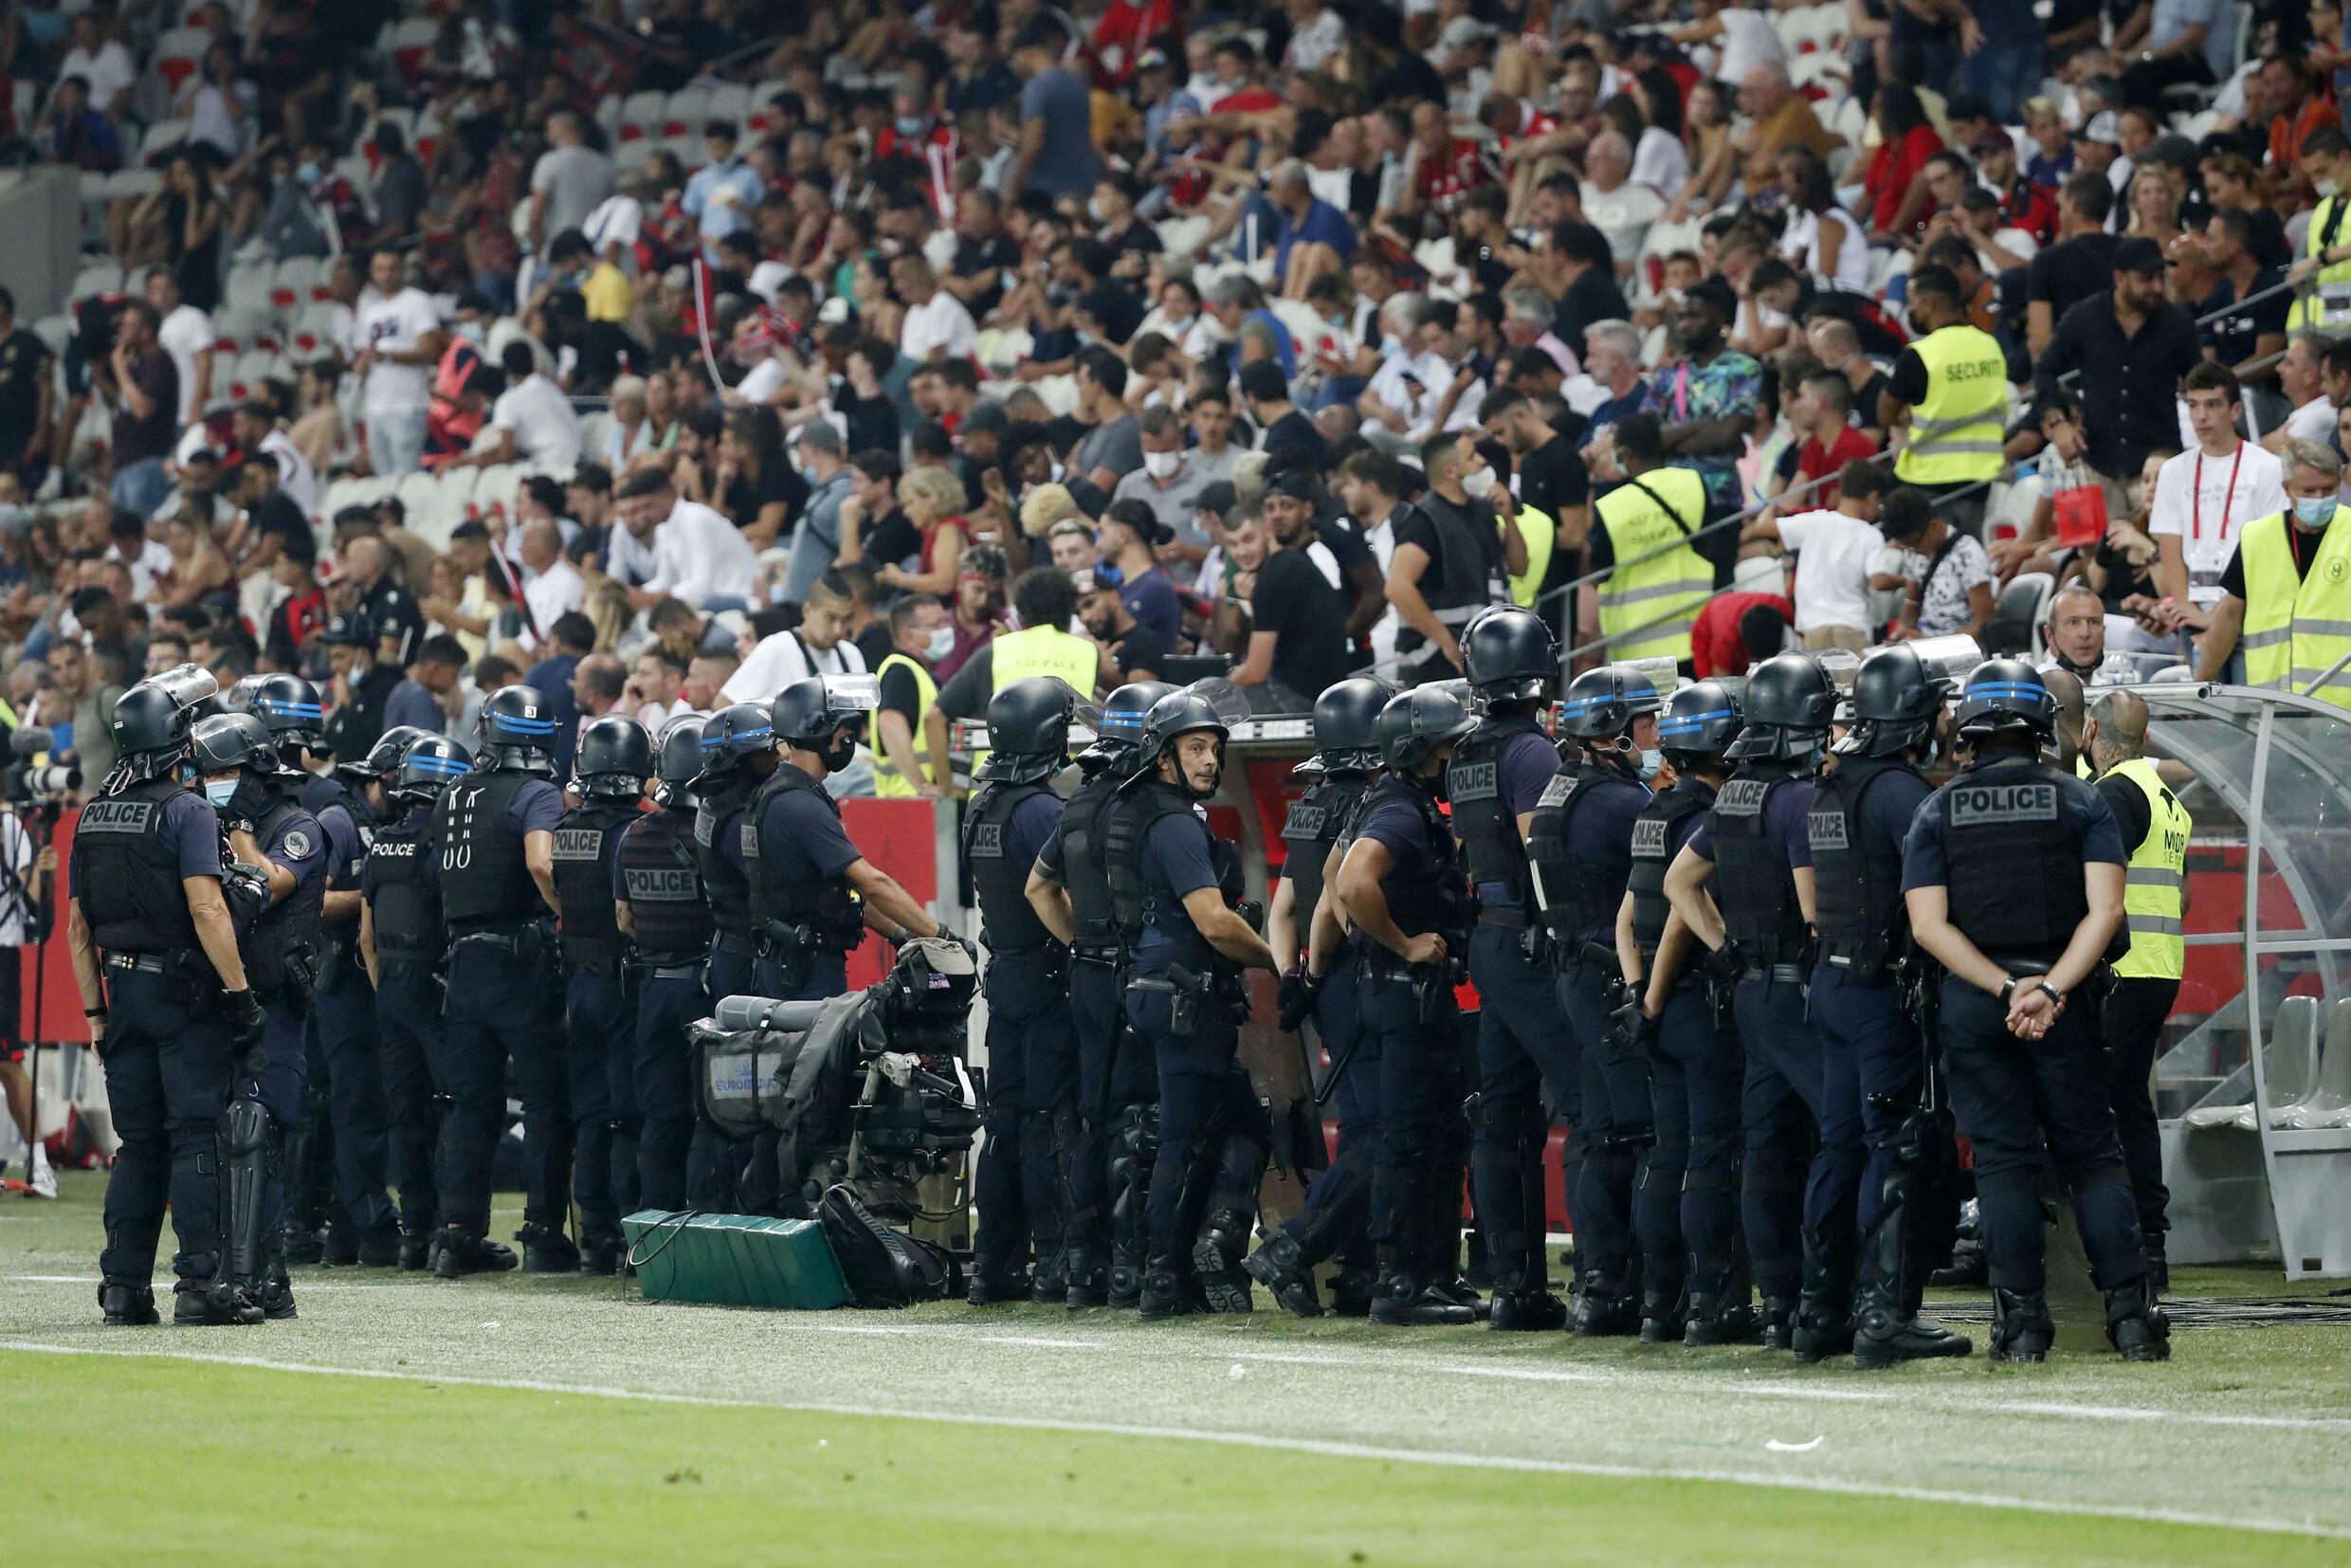 2021-08-22T211947Z_1092937668_UP1EH8M1N8XMV_RTRMADP_3_SOCCER-FRANCE-NCE-OLM-REPORT